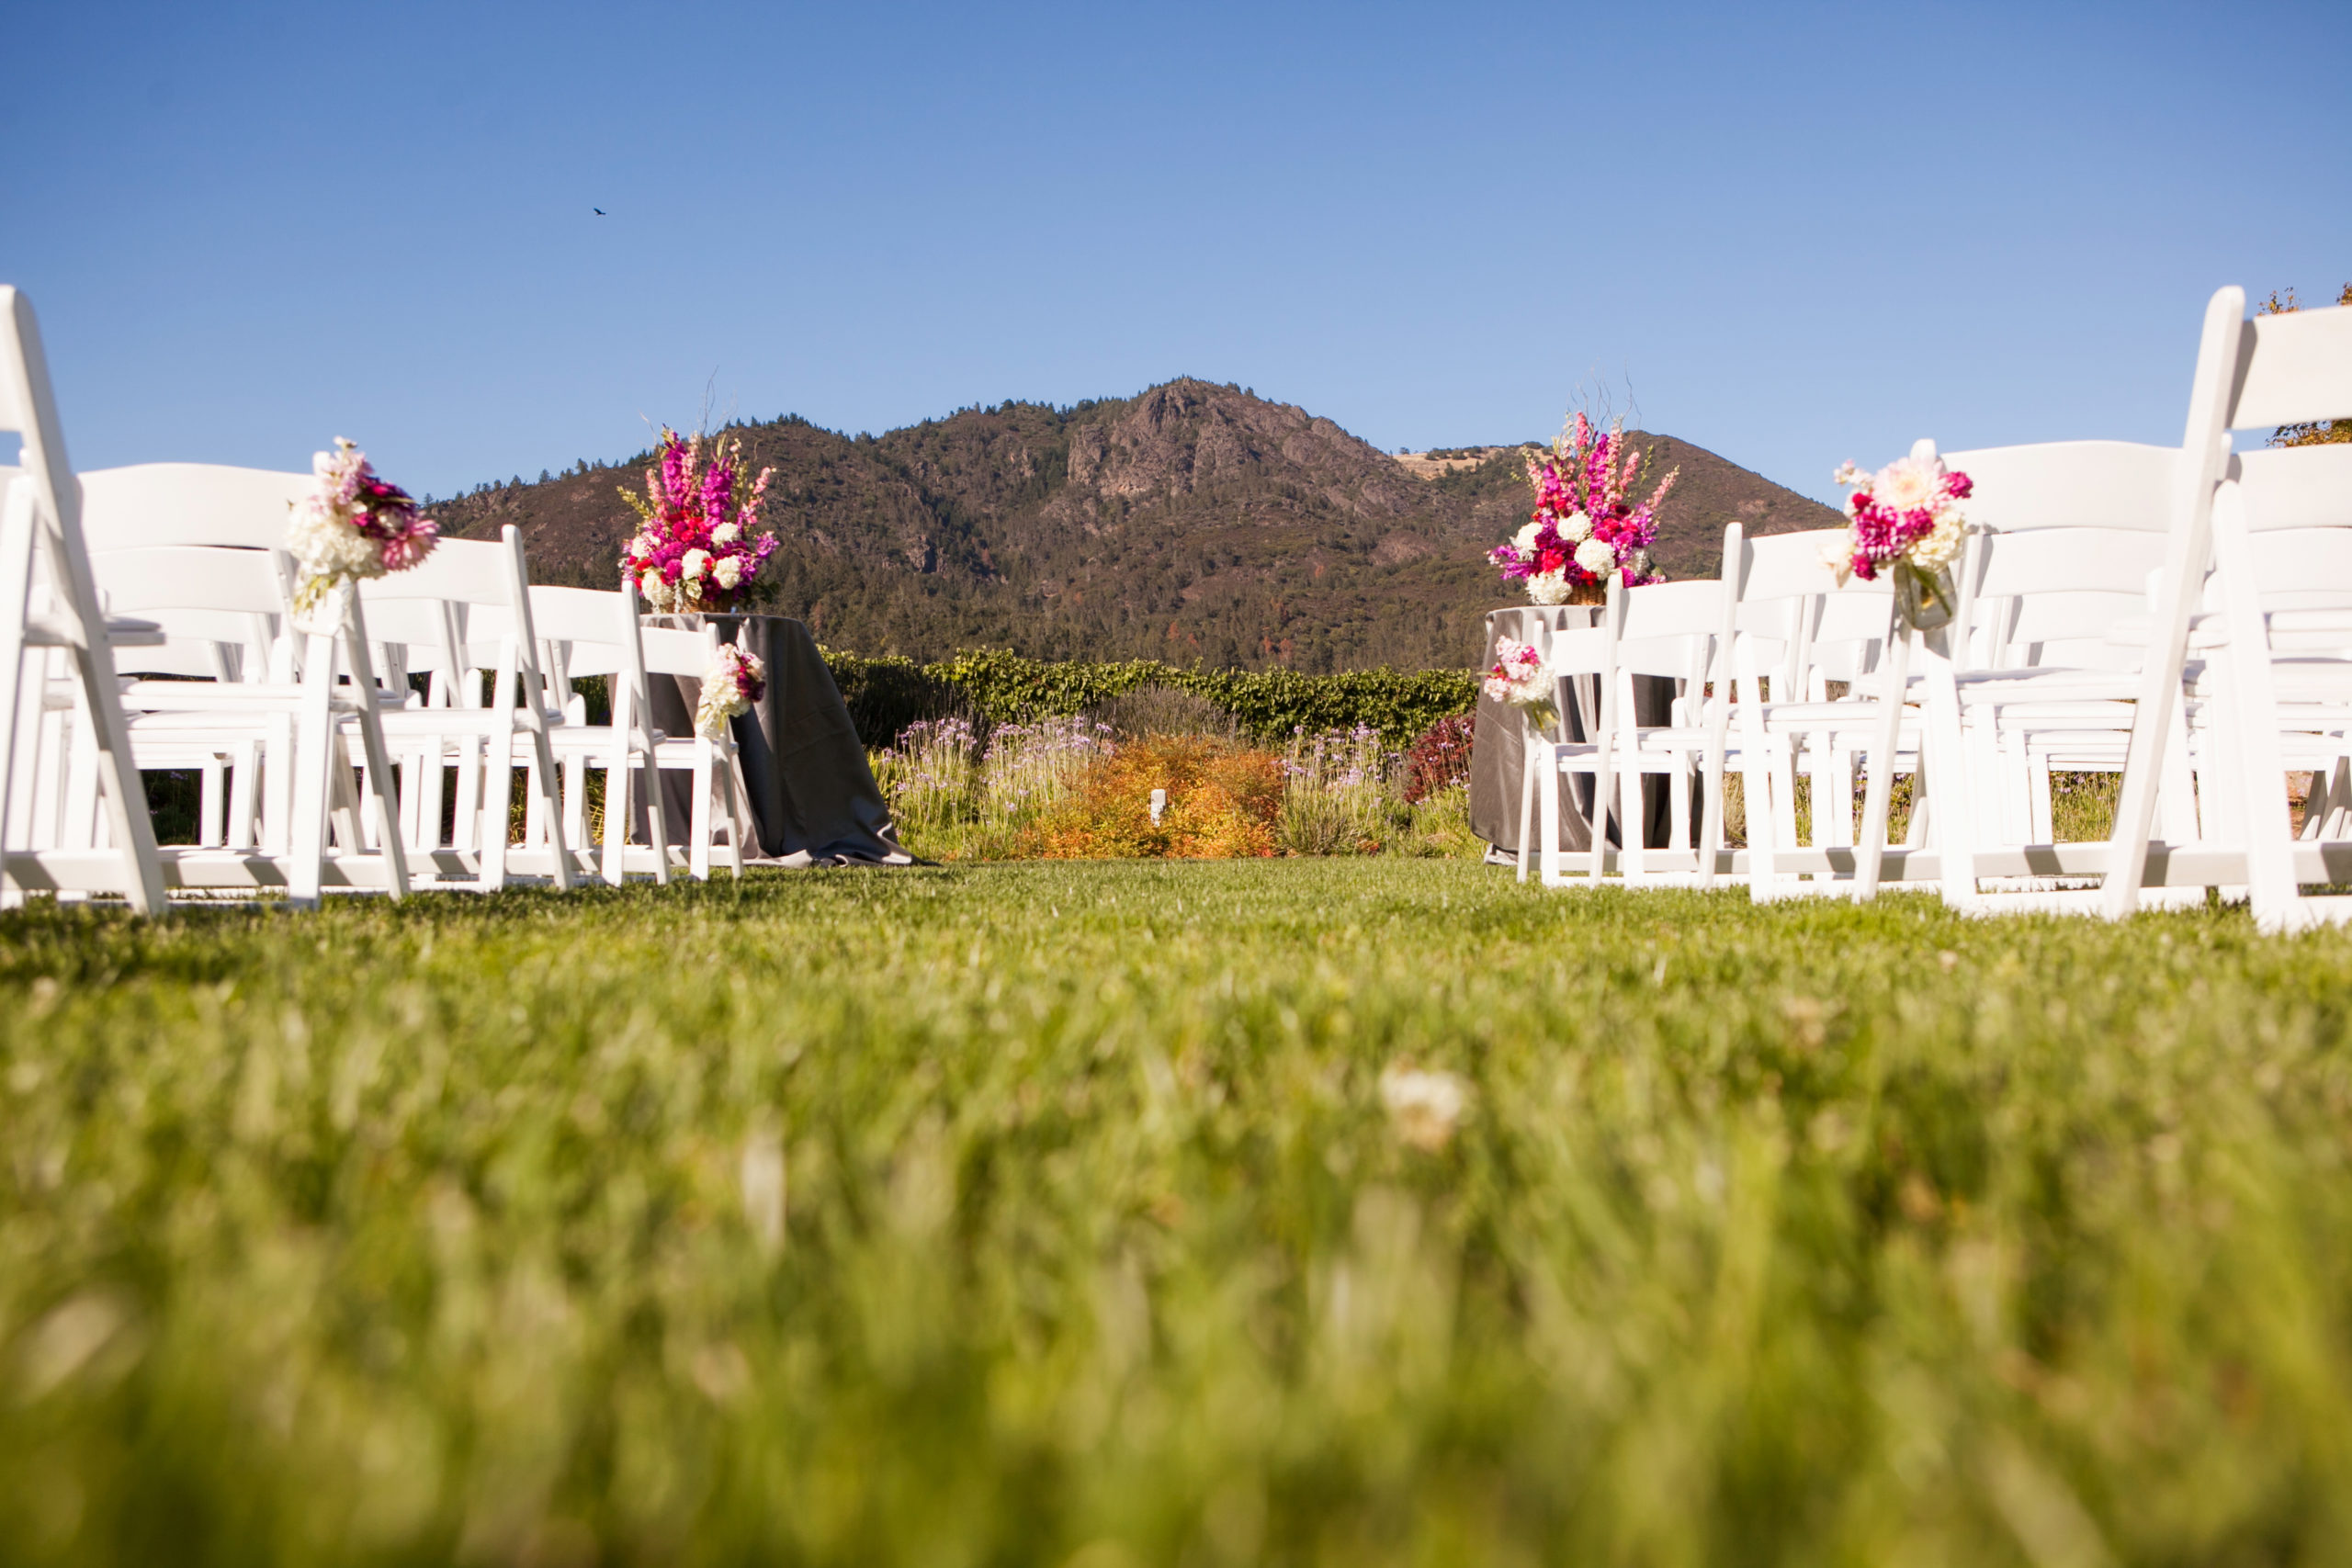 How long does it take to plan a wedding?